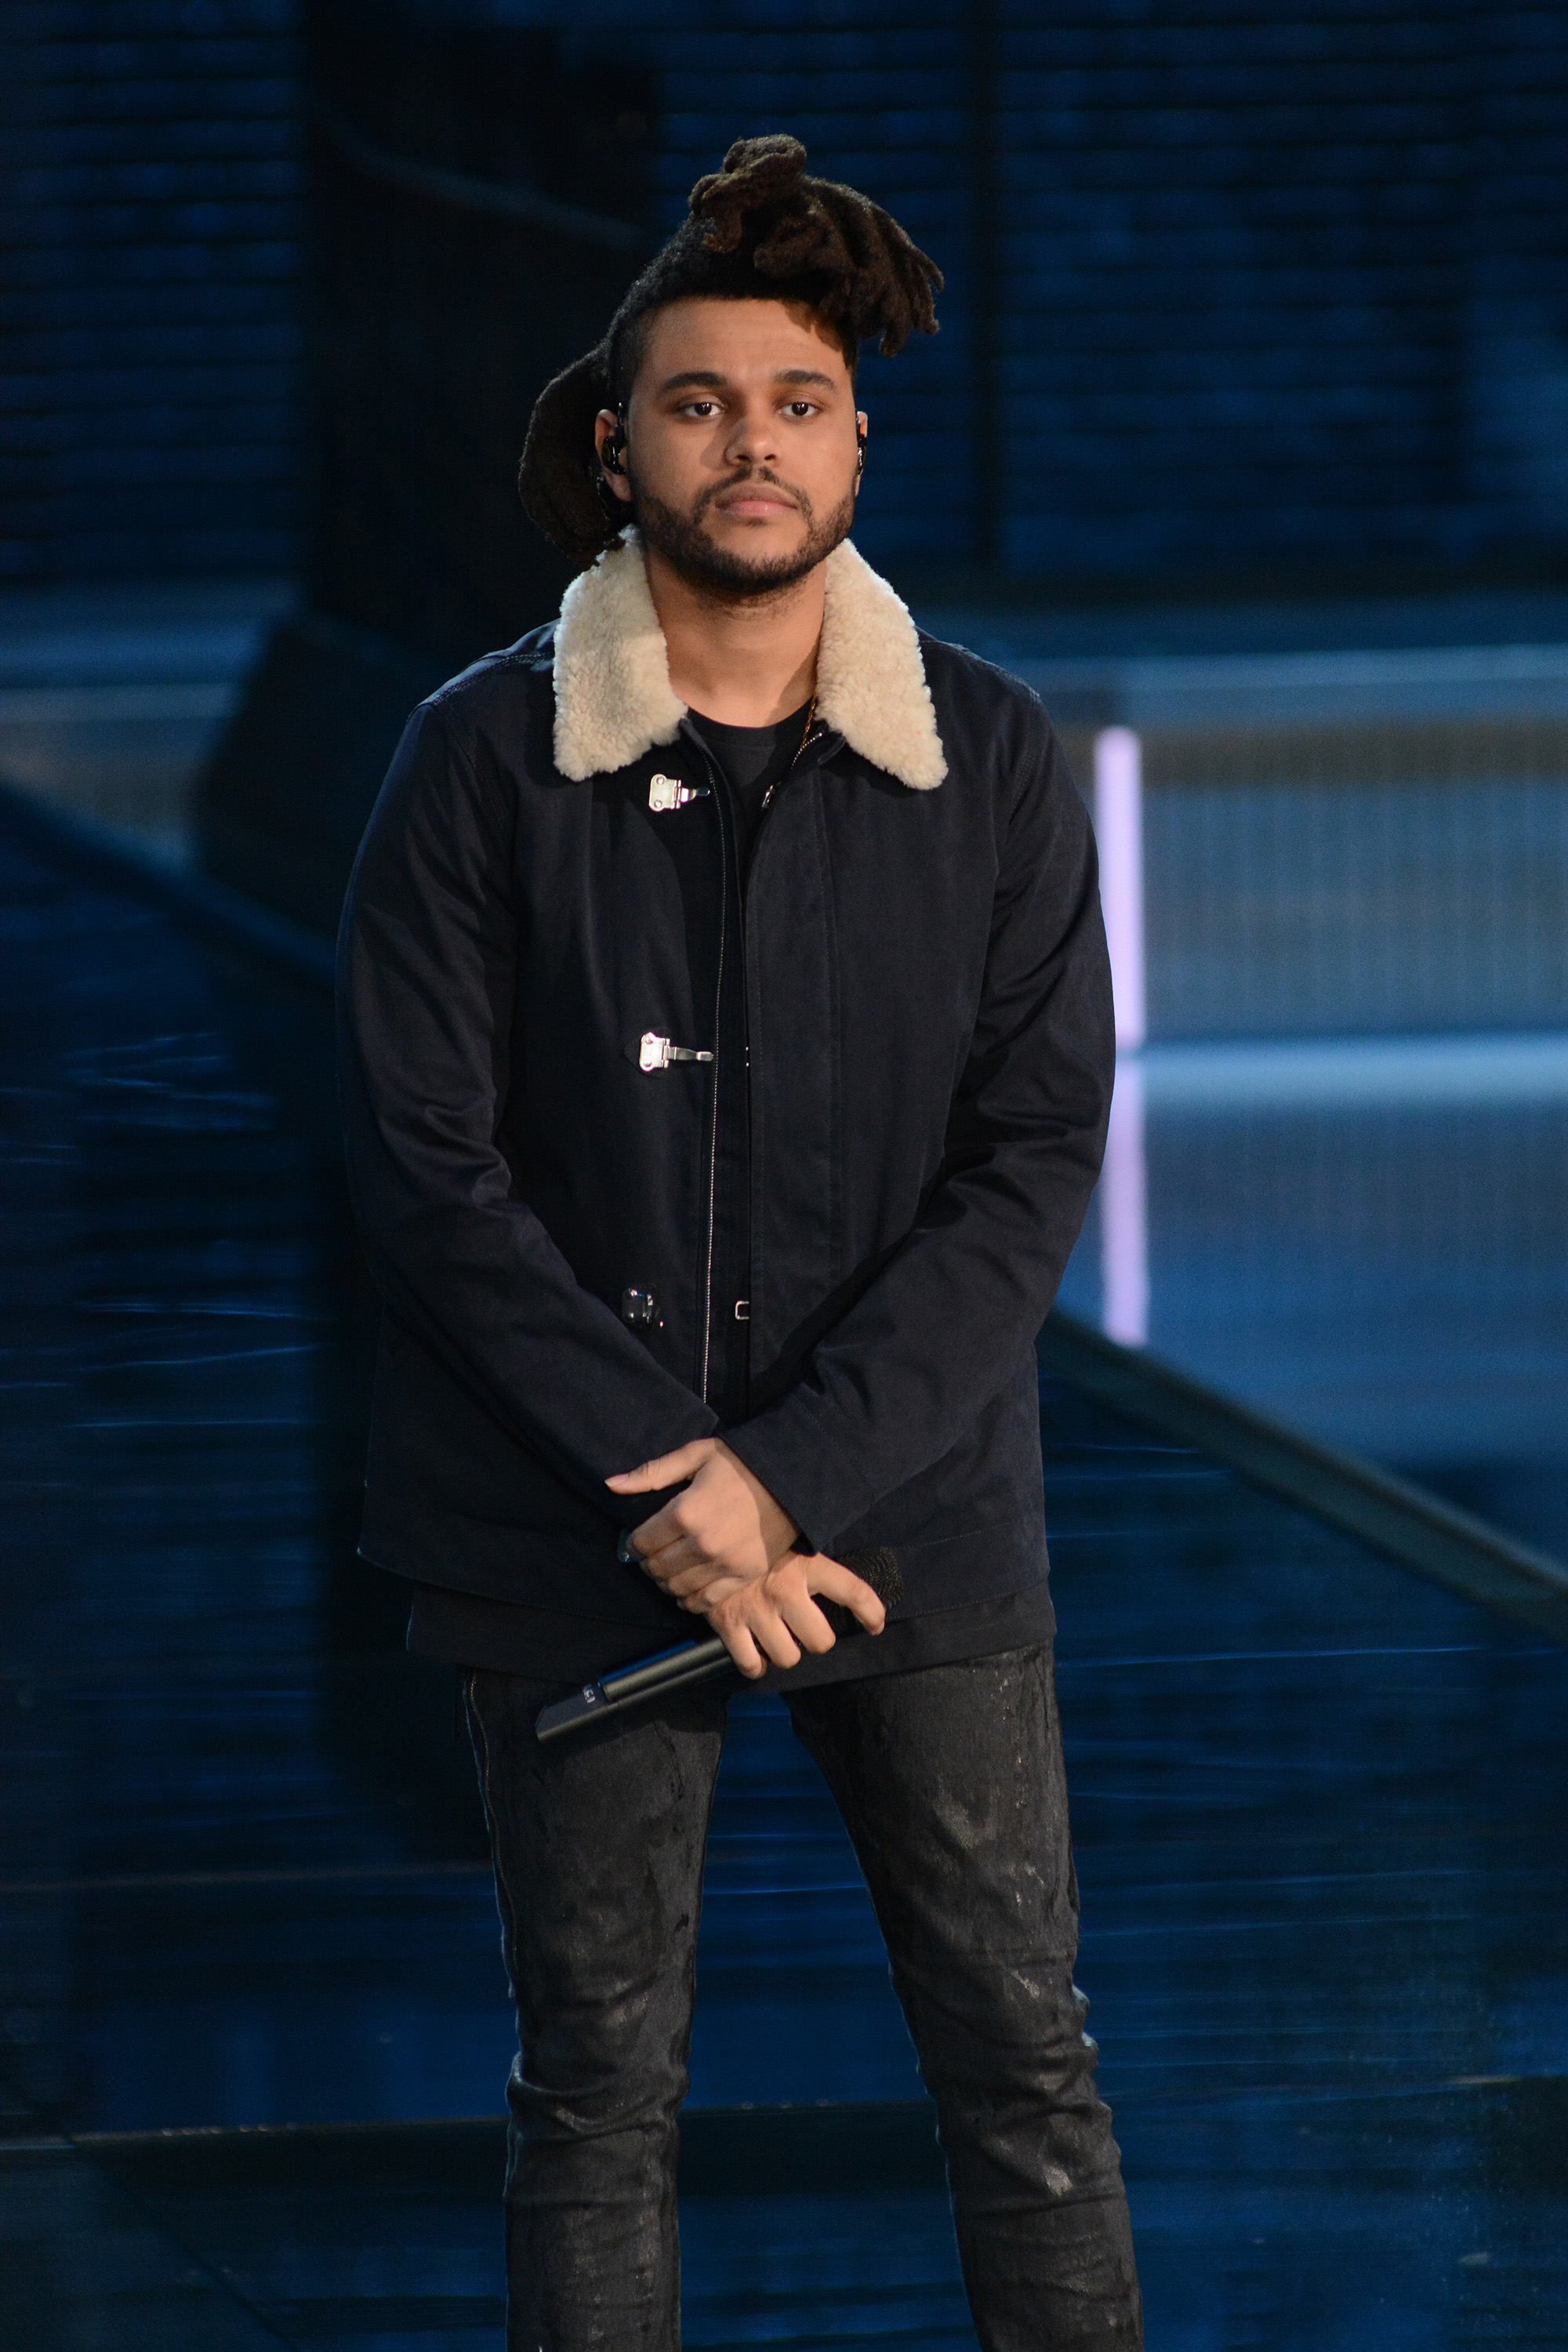 The Weeknd at the 2015 Victoria's Secret Fashion Show (Ivan Nikolov/WENN.com)